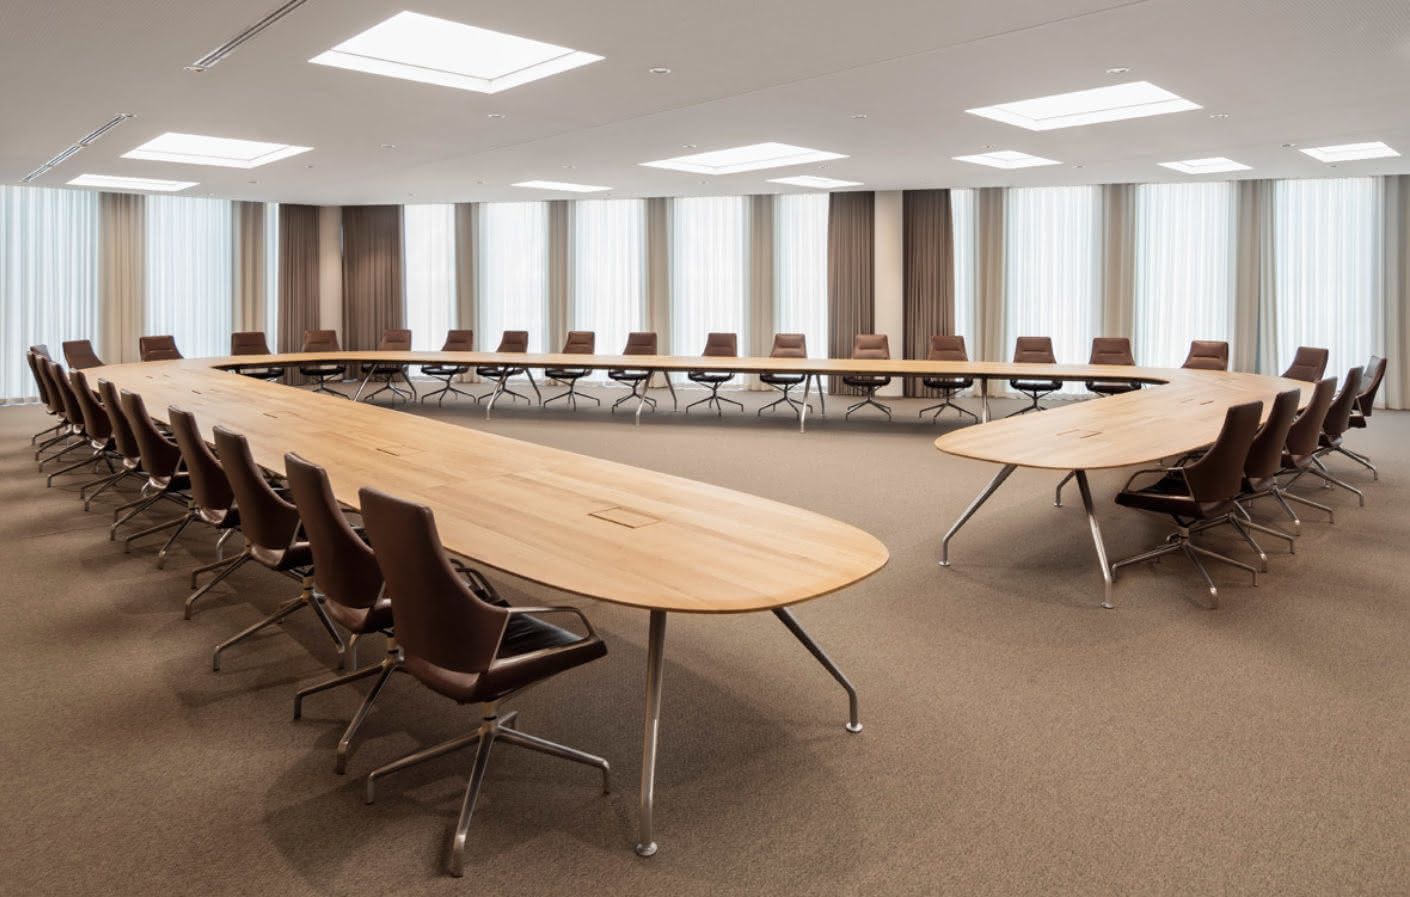 Individually designed as an open triangle, the Graph conference table provides seating for 32 people and is complemented with leather-covered conference chairs from the program.